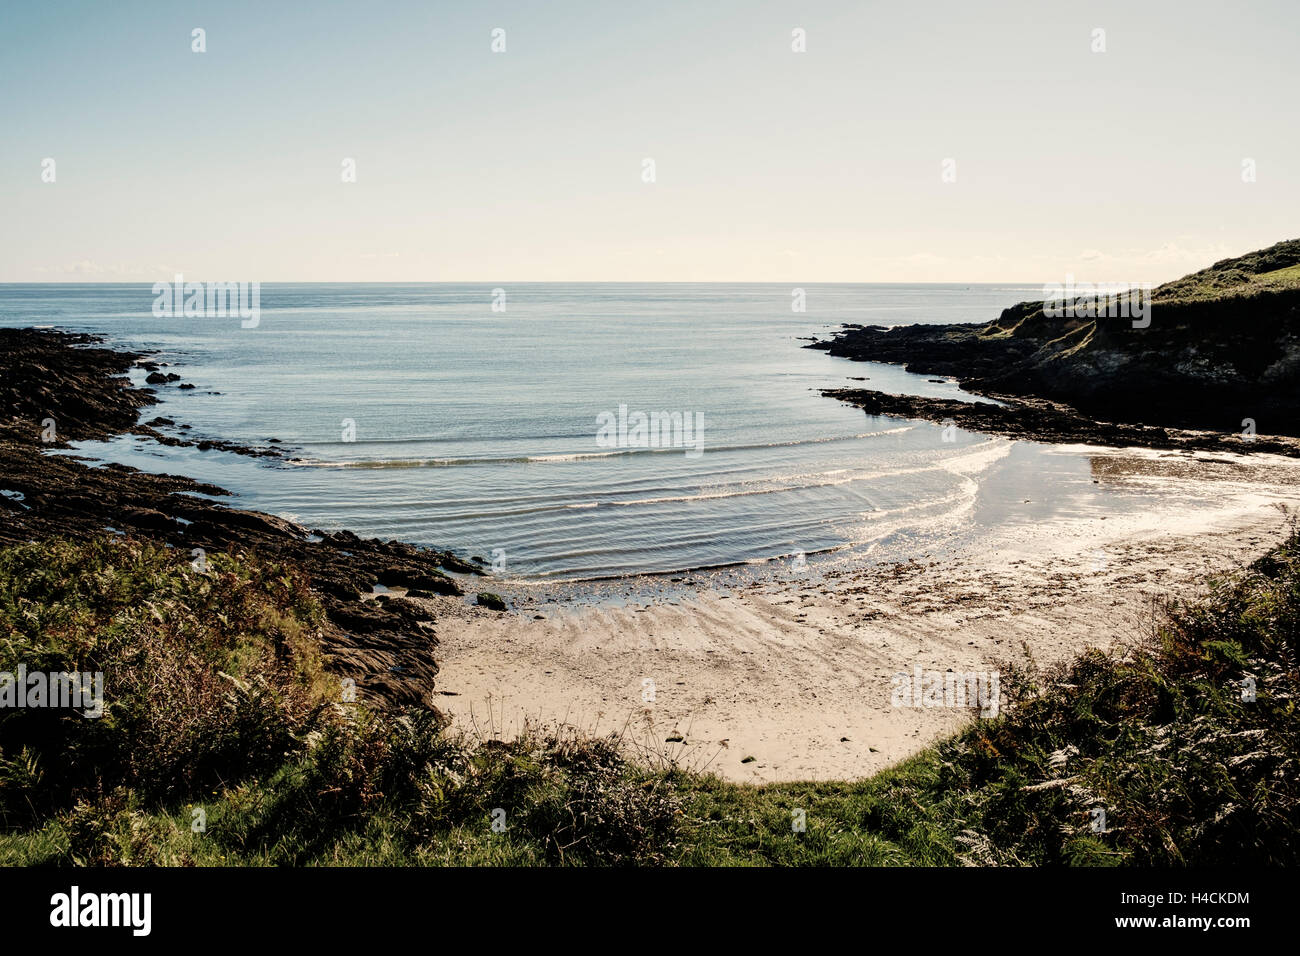 Cornwall beaches - Sandy beach and cove and calm ocean, Cornwall, England, UK - Stock Image